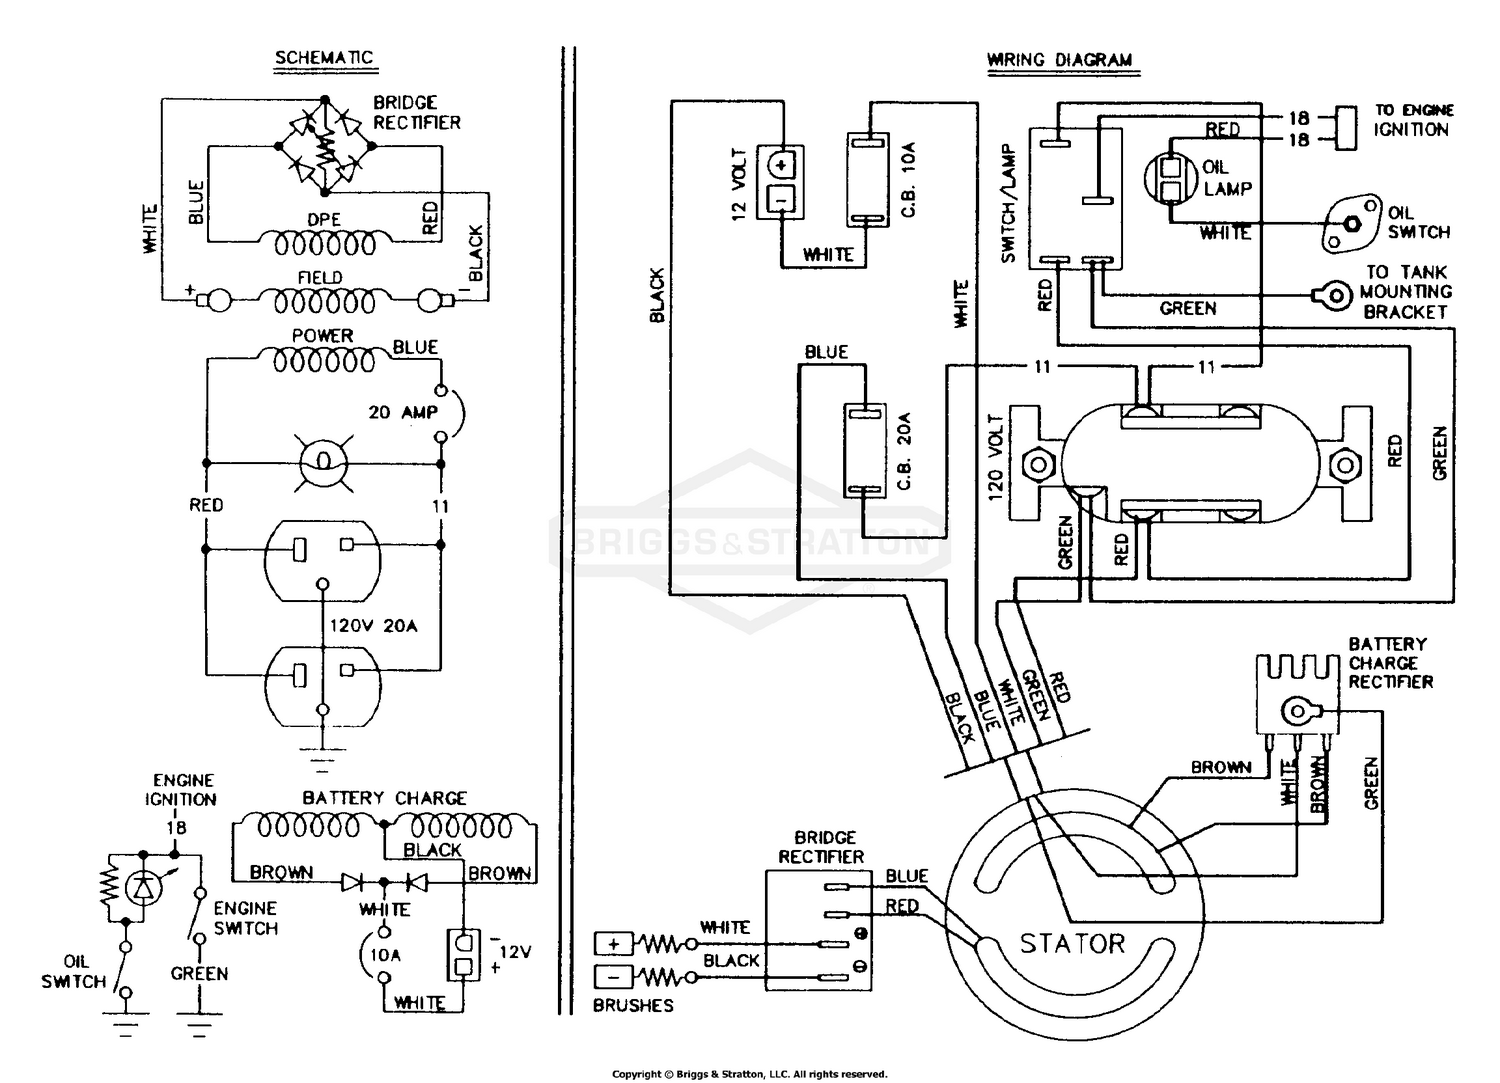 Briggs Amp Stratton Power Products Del 26072017021729 8968 0 12v Schematic Wiring Electrical Diagram